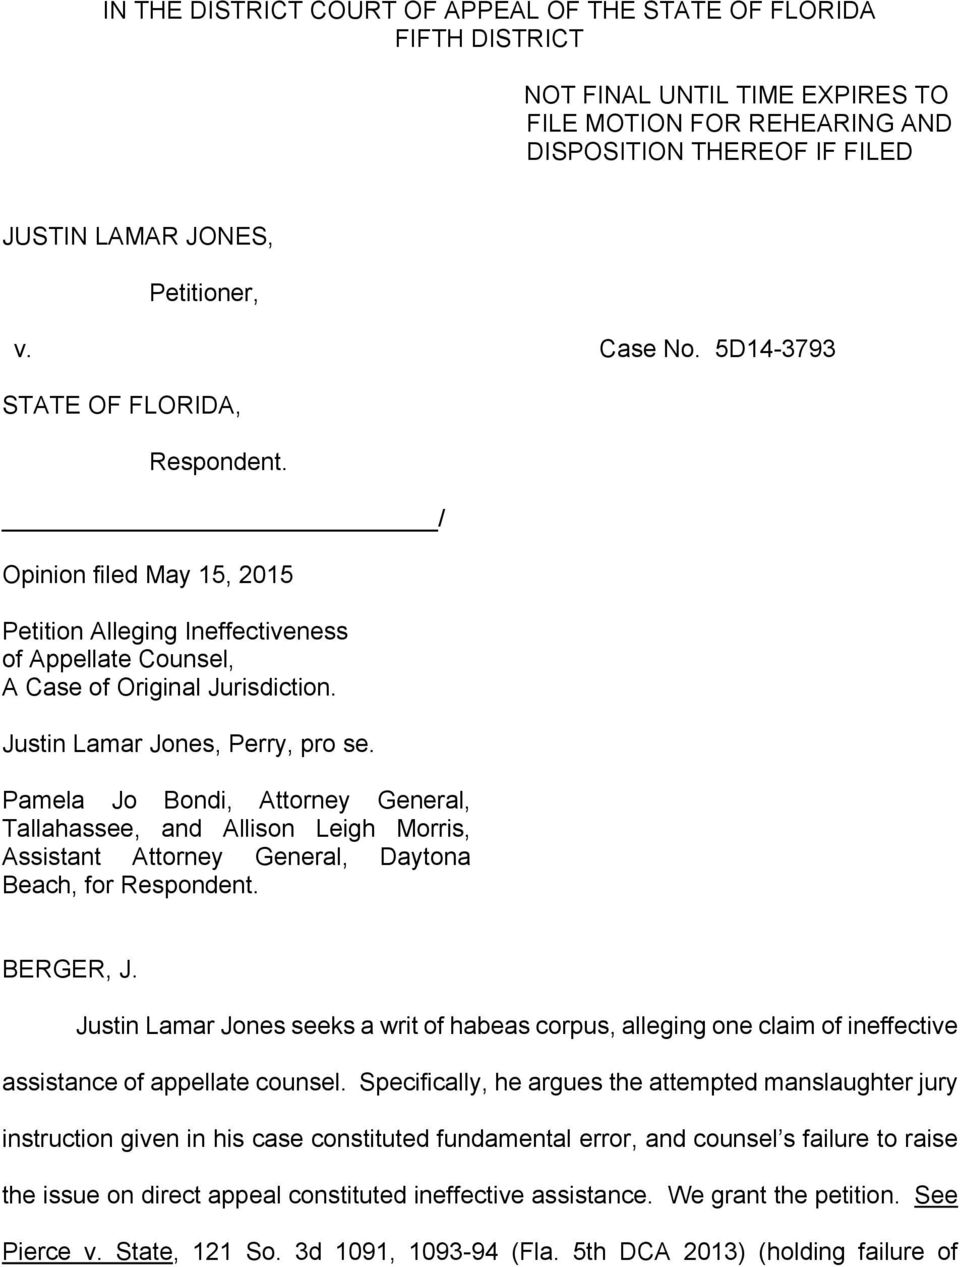 Justin Lamar Jones, Perry, pro se. Pamela Jo Bondi, Attorney General, Tallahassee, and Allison Leigh Morris, Assistant Attorney General, Daytona Beach, for Respondent. BERGER, J.